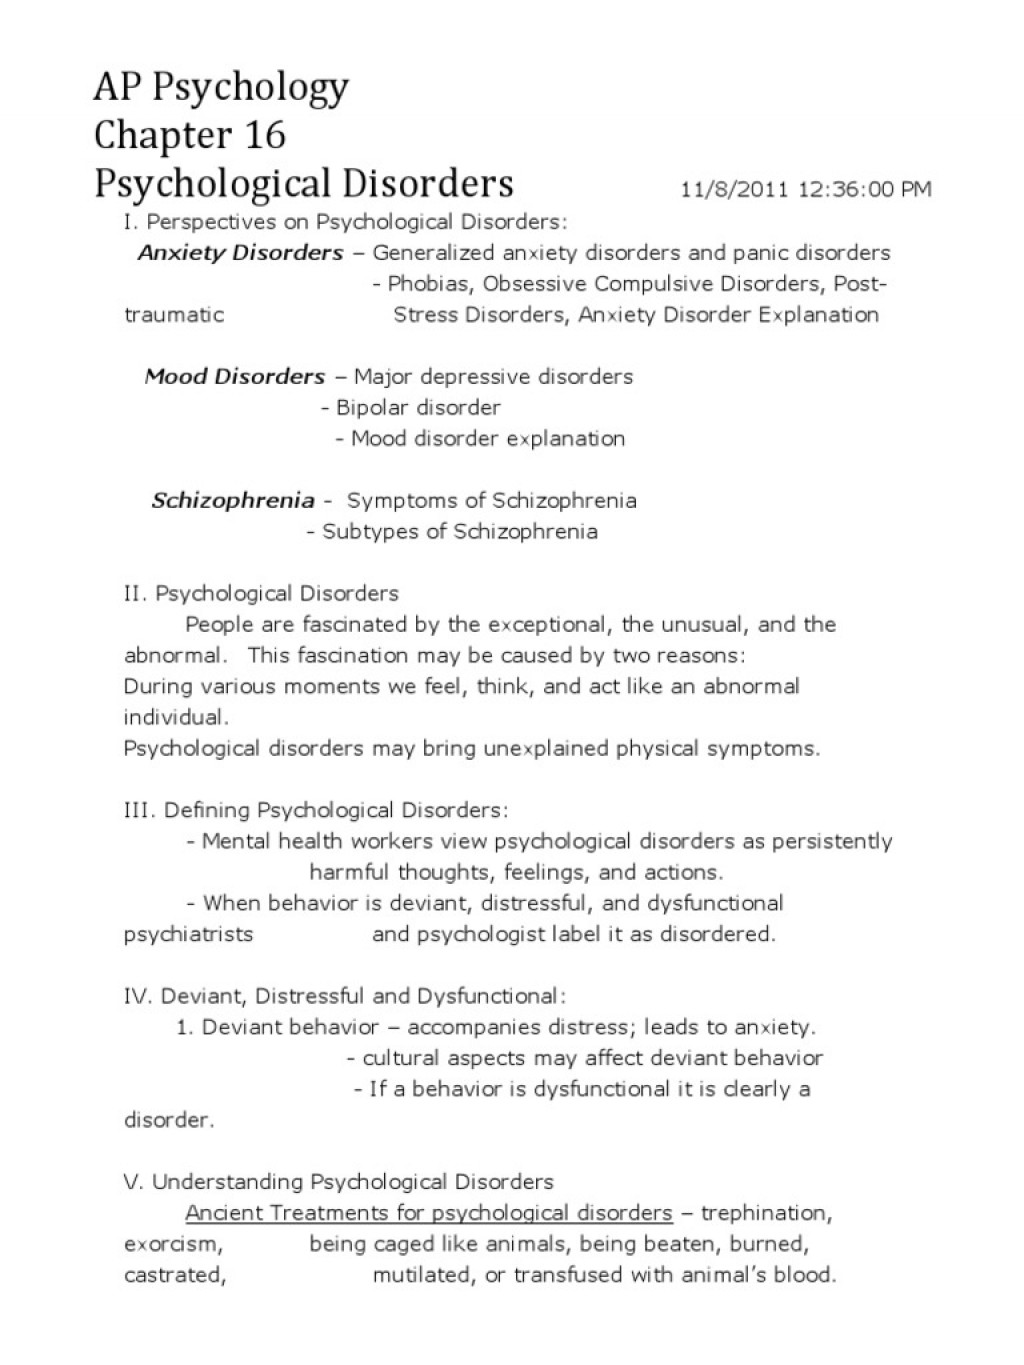 019 Bipolar Disorder Essay Topics Title Pdf College Introduction Question Conclusion Examples Outline How To Write Paragraph Research Best A Paper Great Large